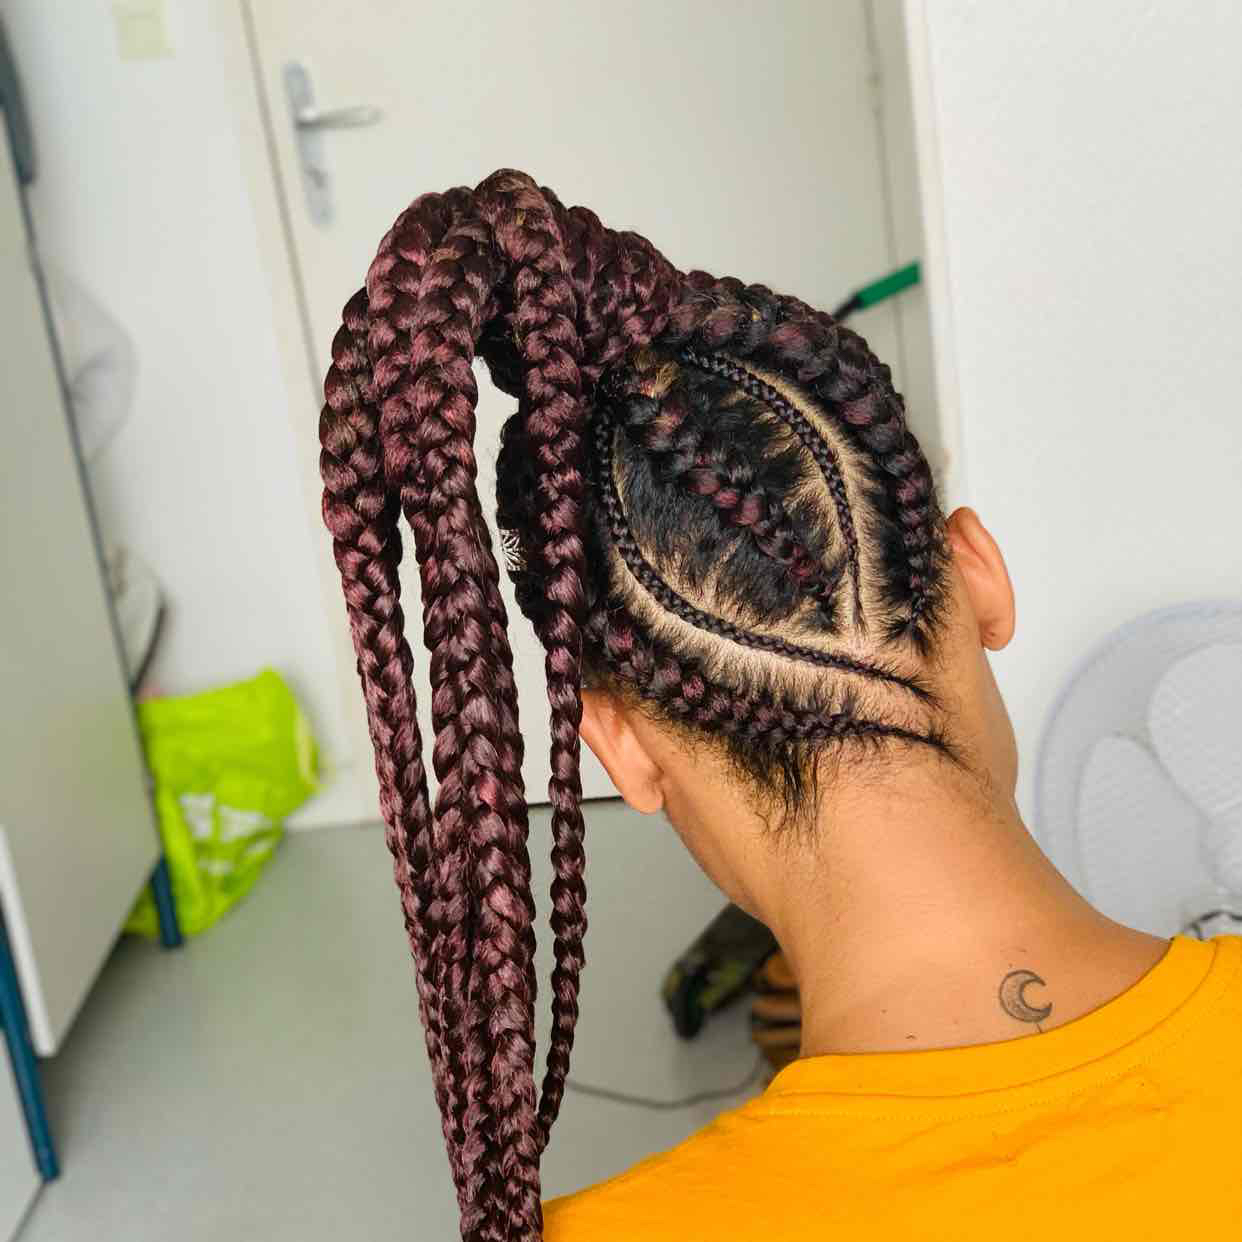 salon de coiffure afro tresse tresses box braids crochet braids vanilles tissages paris 75 77 78 91 92 93 94 95 VUMZEIXX